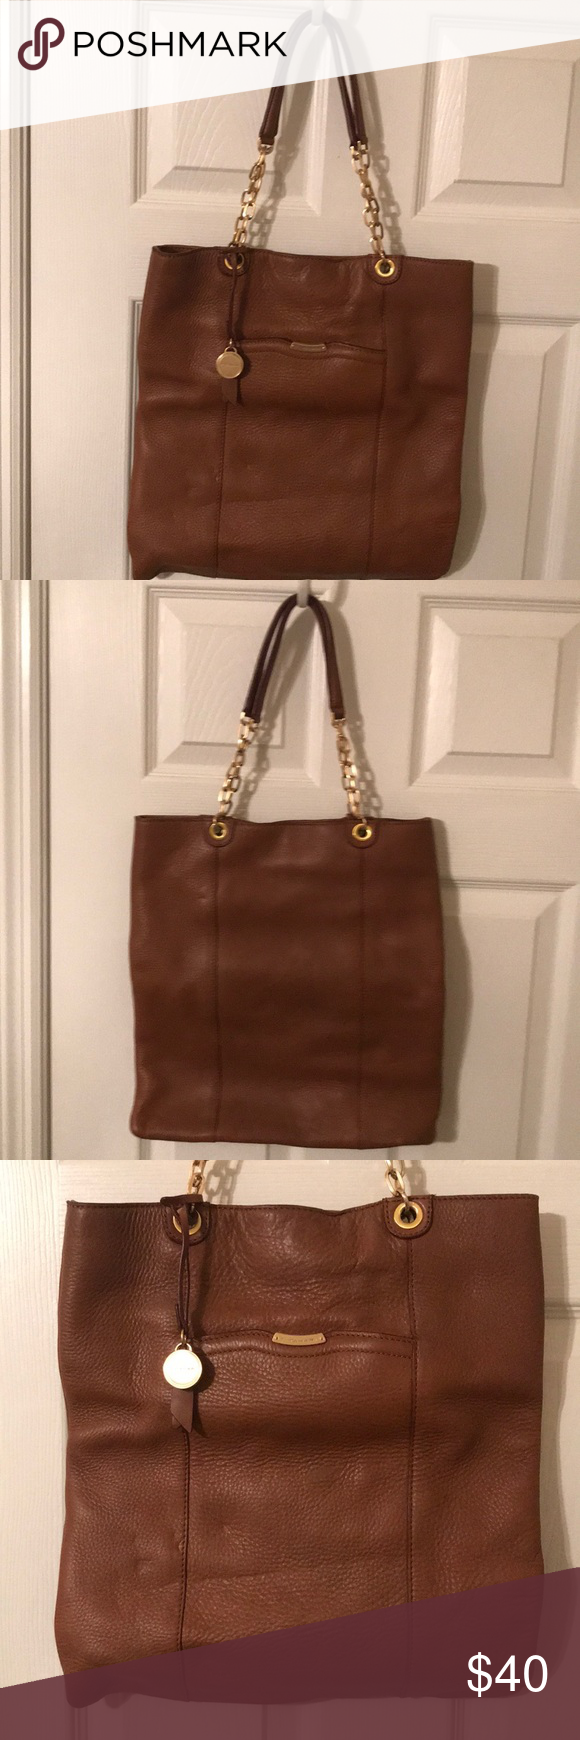 """T Tahari cognac leather tote Beautiful T Tahari cognac tote. Great condition. A couple indentions on the front where it has been stored. 15"""" tall x 14"""" wide. T Tahari Bags Totes"""